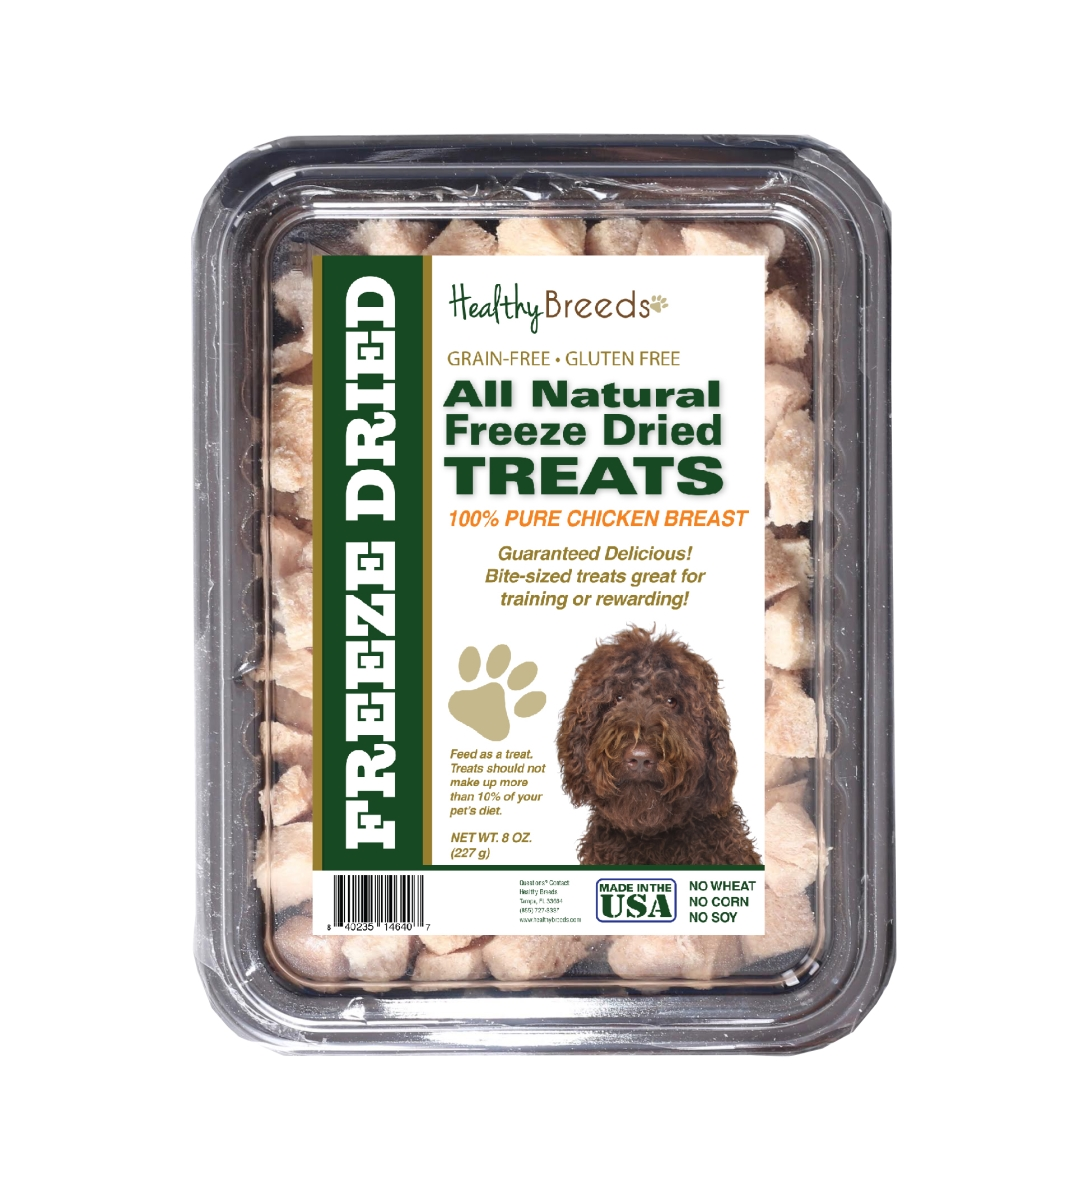 Healthy Breeds 840235146407 8 oz Labradoodle All Natural Freeze Dried Treats Chicken Breast